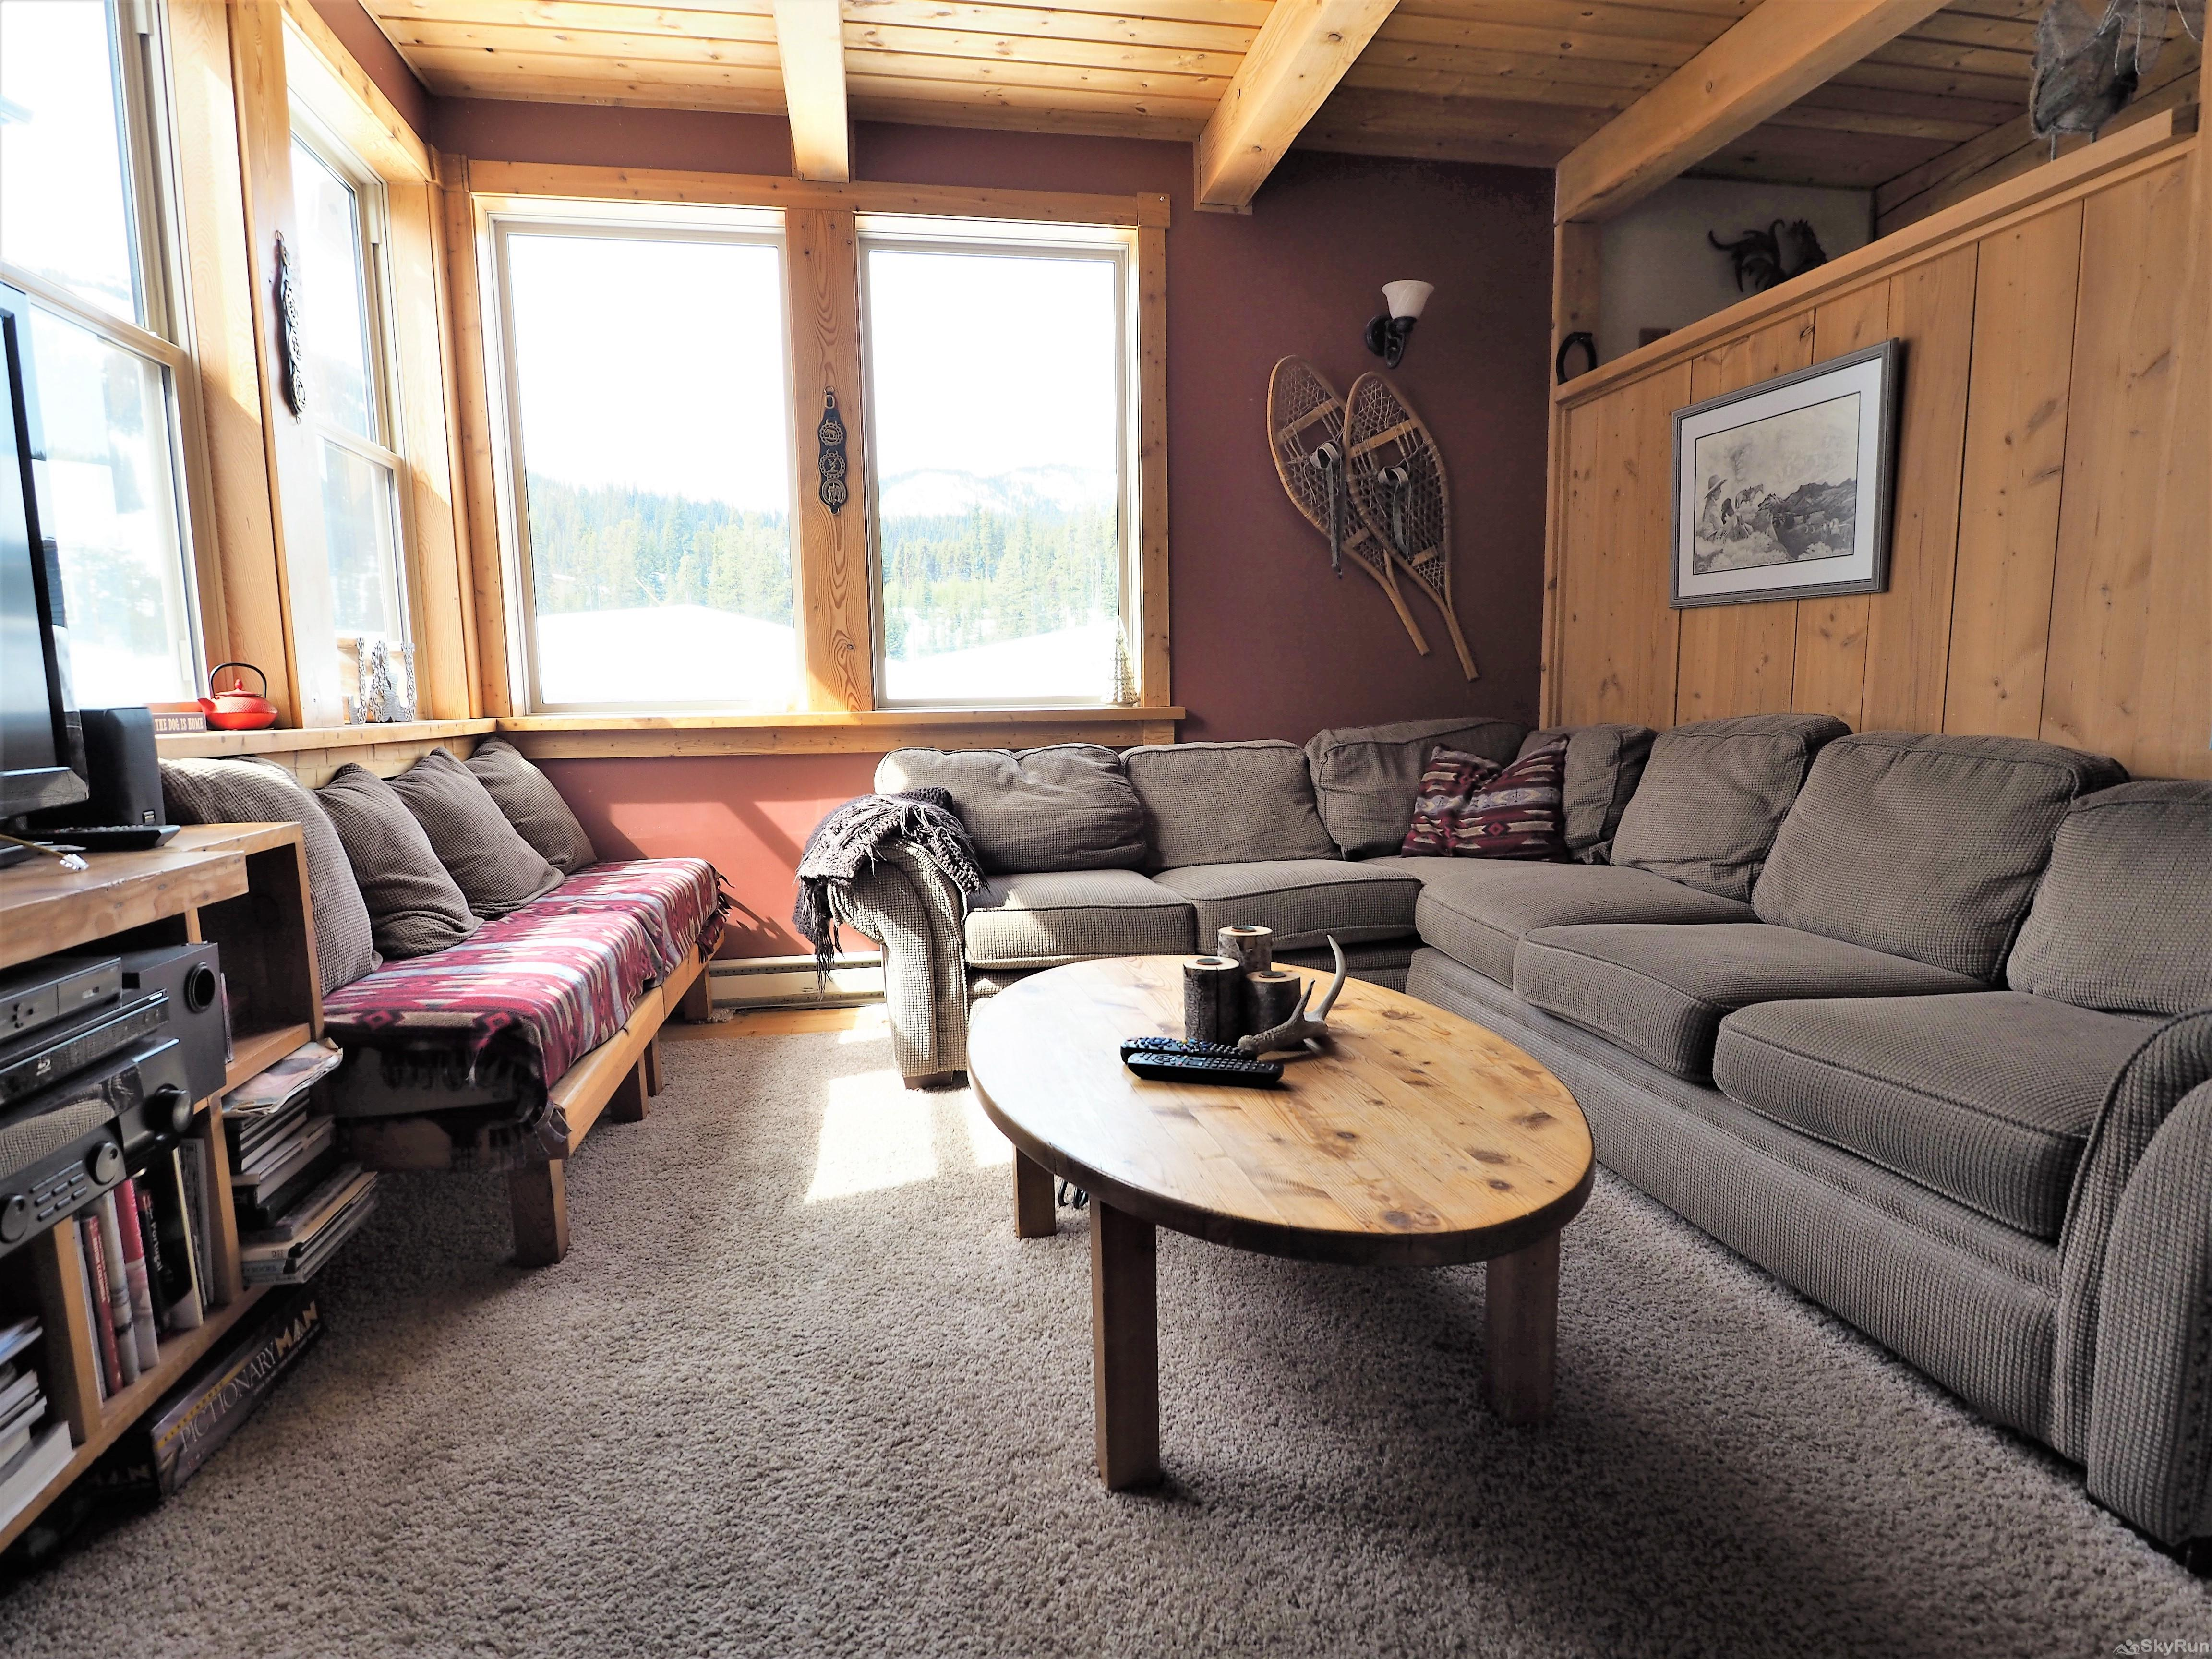 Wildside at Apex The living room helps to create a true ski cabin feel